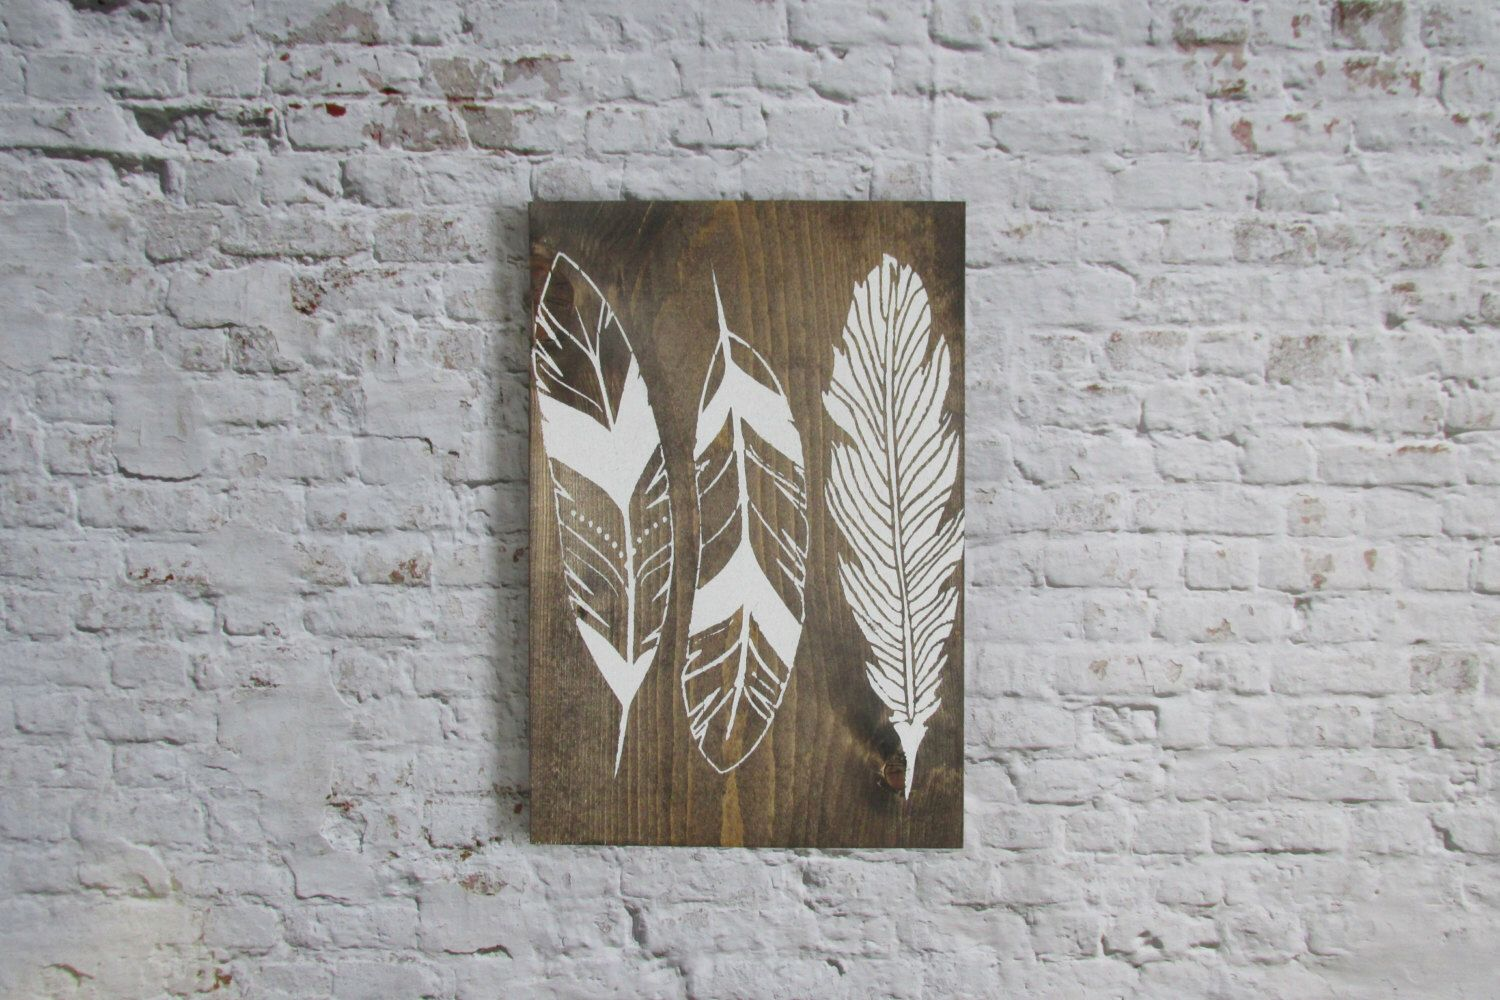 Rustic feather sign wood signs wooden signs rustic decor boho